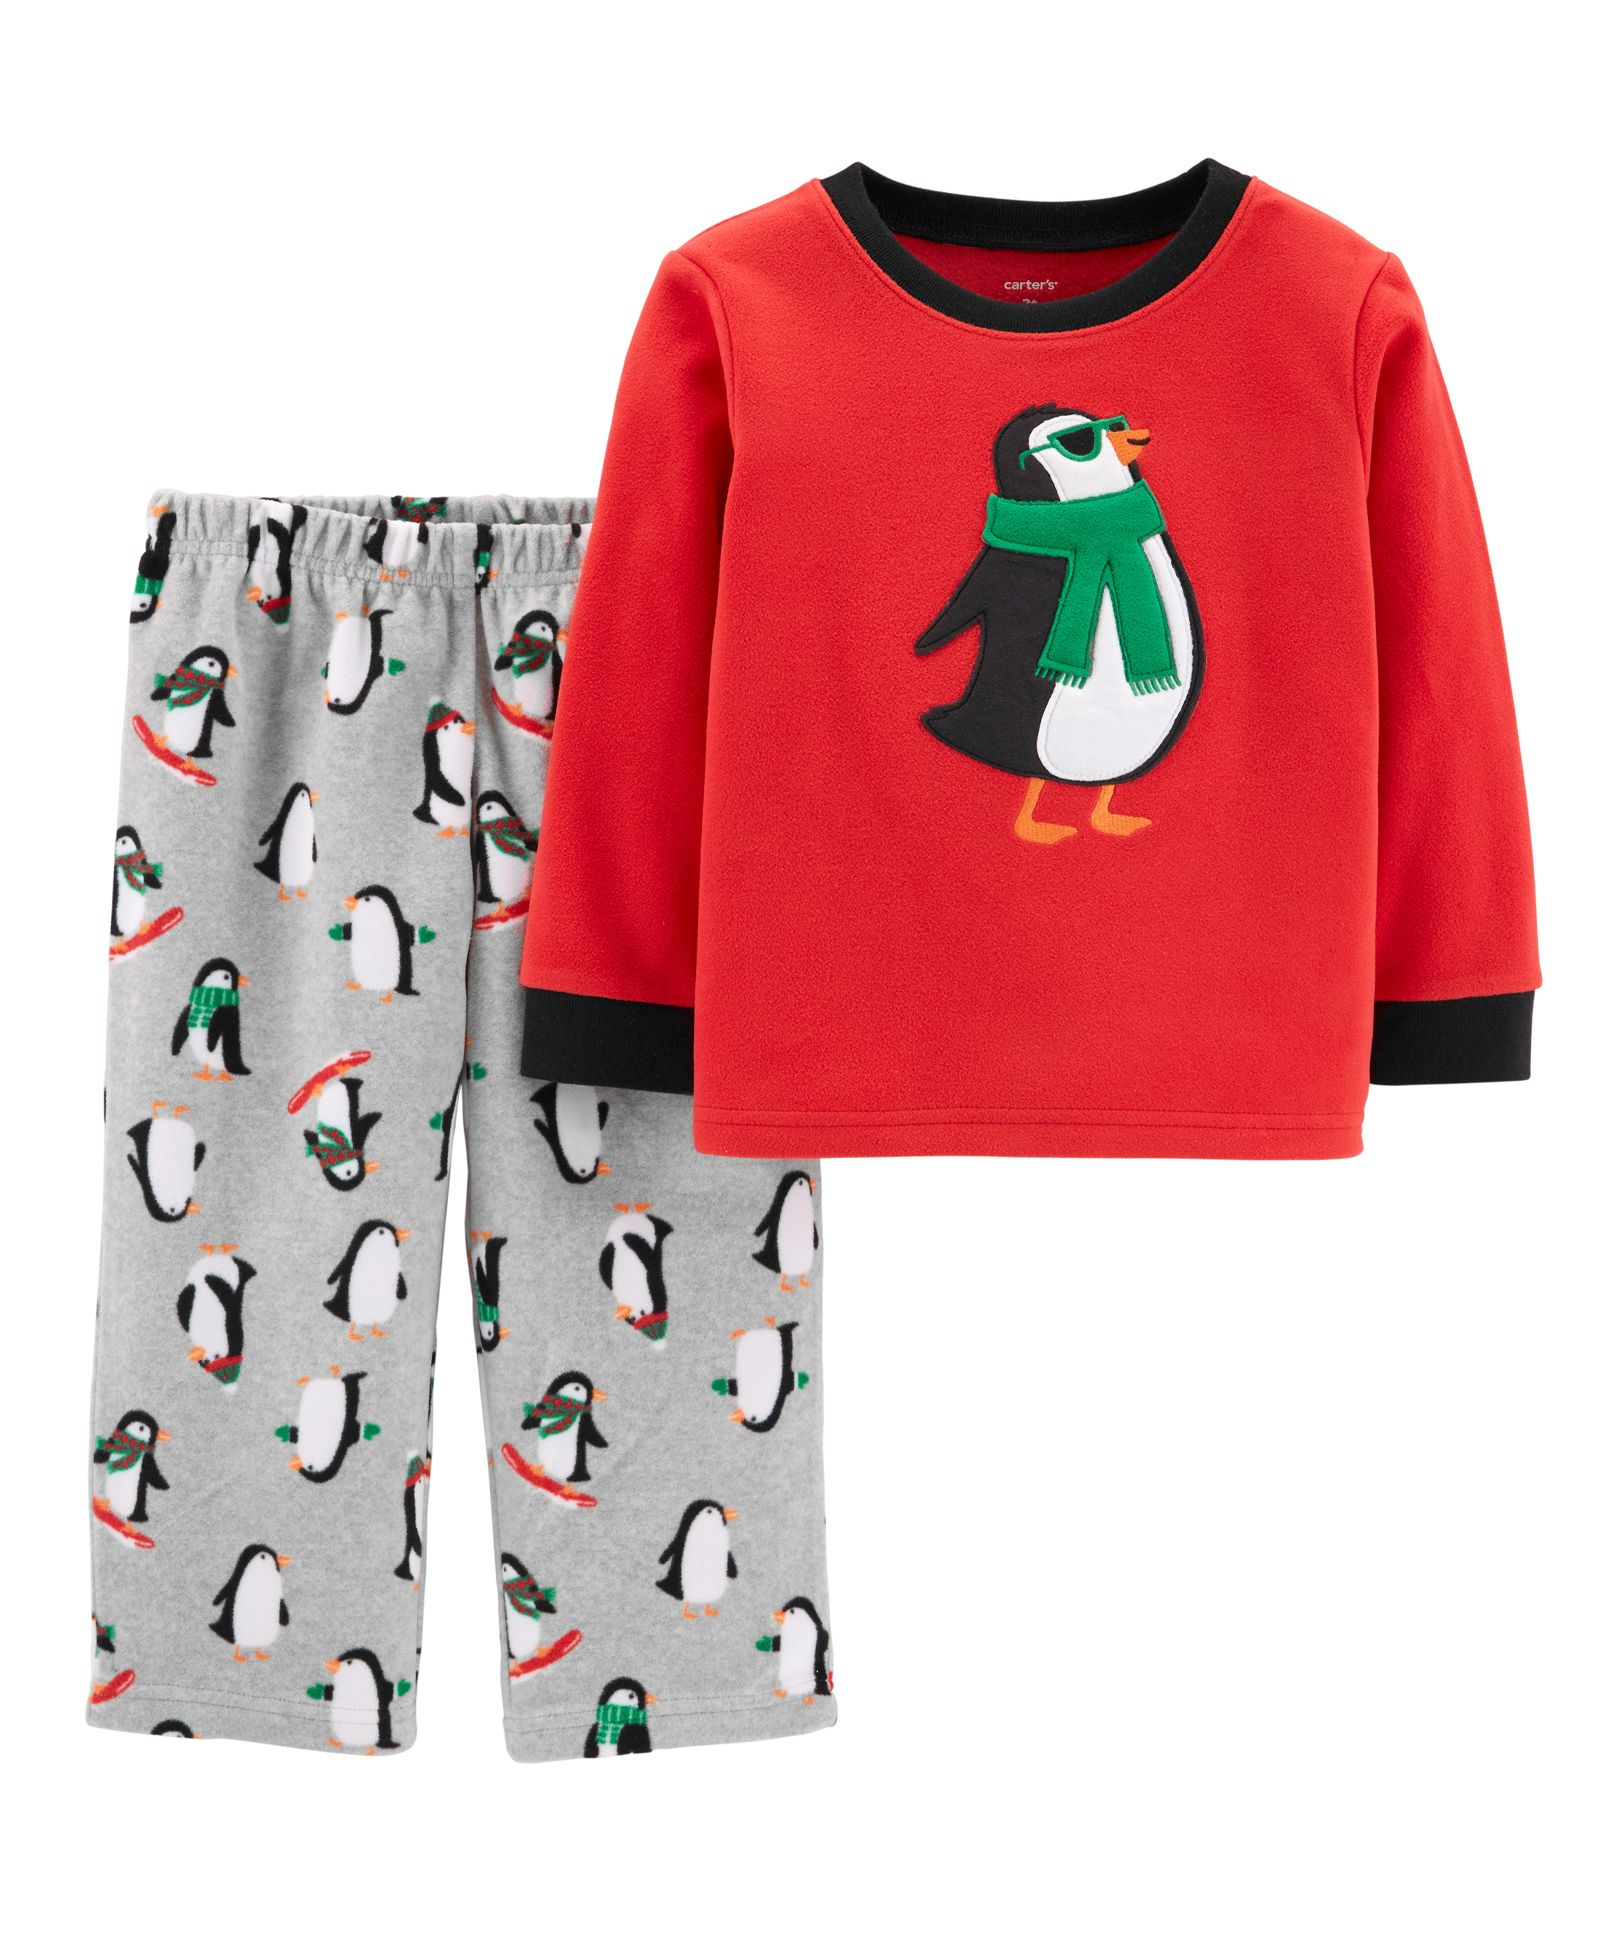 bdffb5ca2801 Buy Carters 2Piece Penguin Fleece PJs Red Grey for Boys (9-12 ...